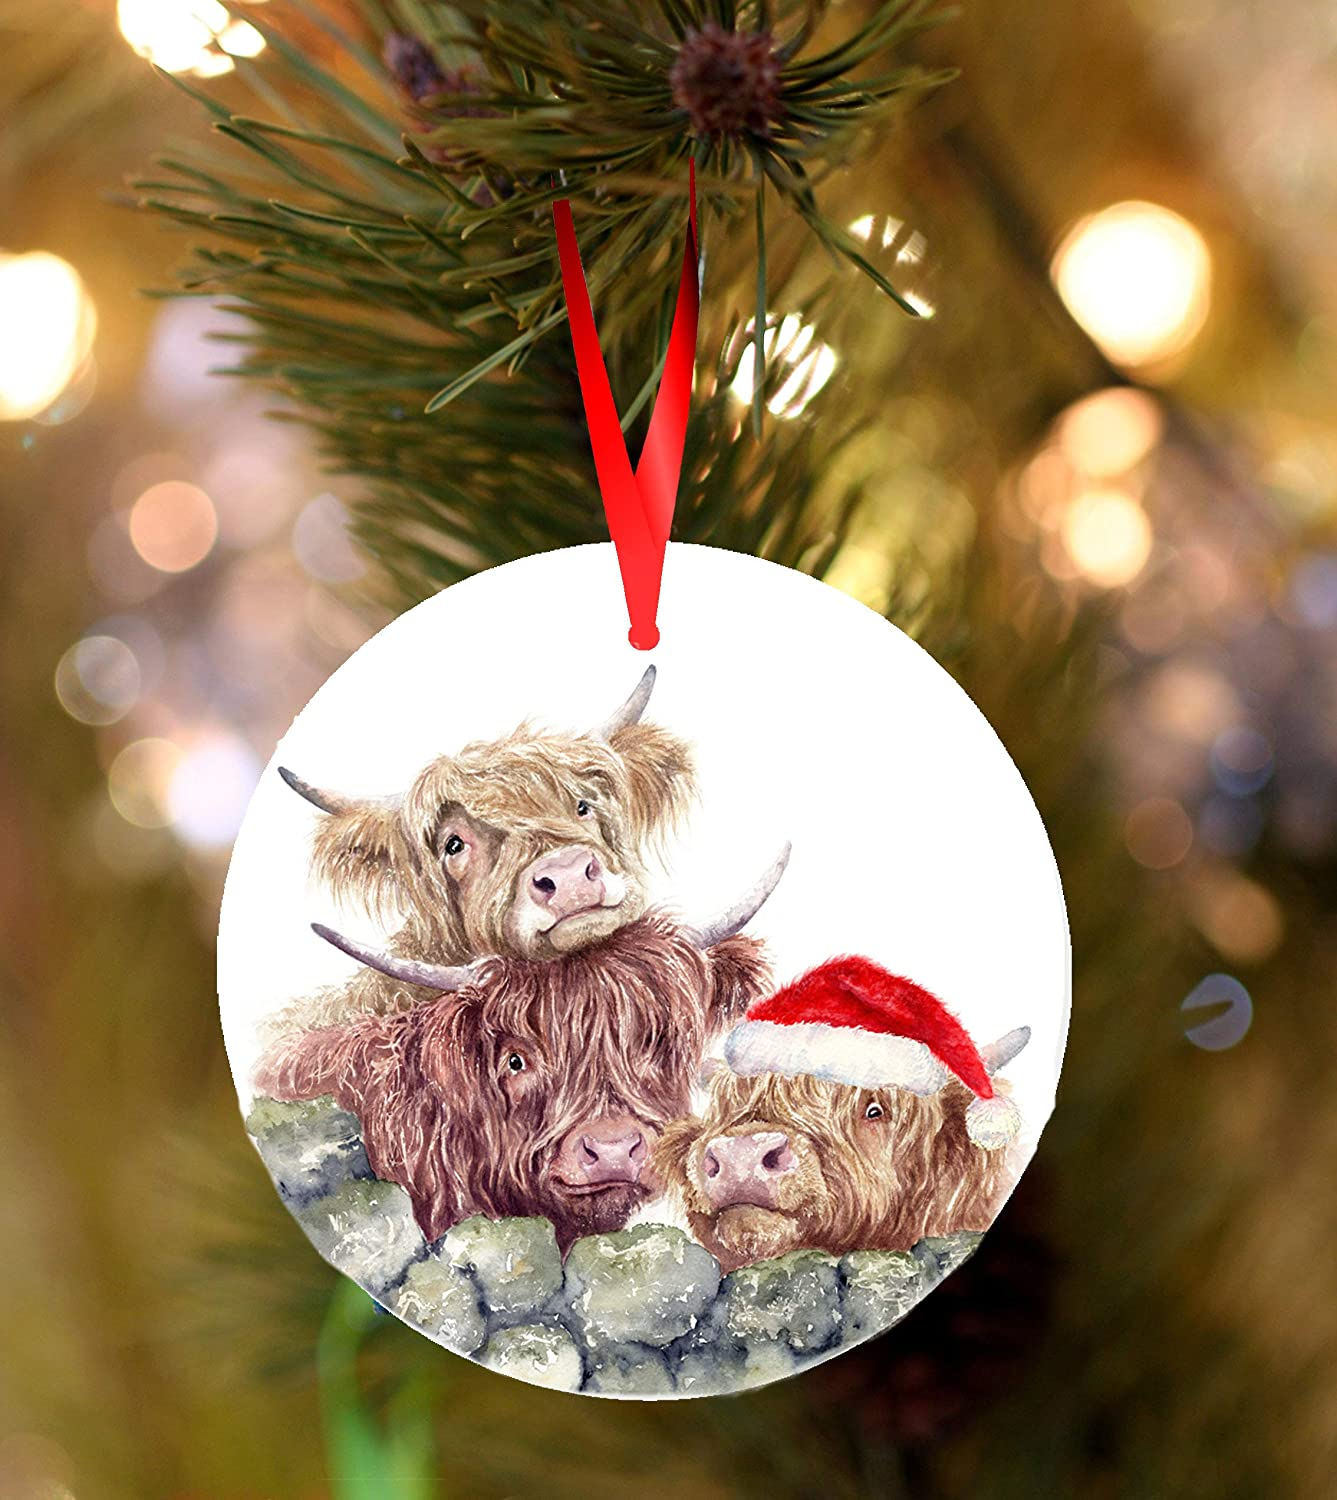 Flowershave357 Highland Cows Ceramic Hanging Christmas Decoration Ornament Christmas Tree Decor Christmas Ornament